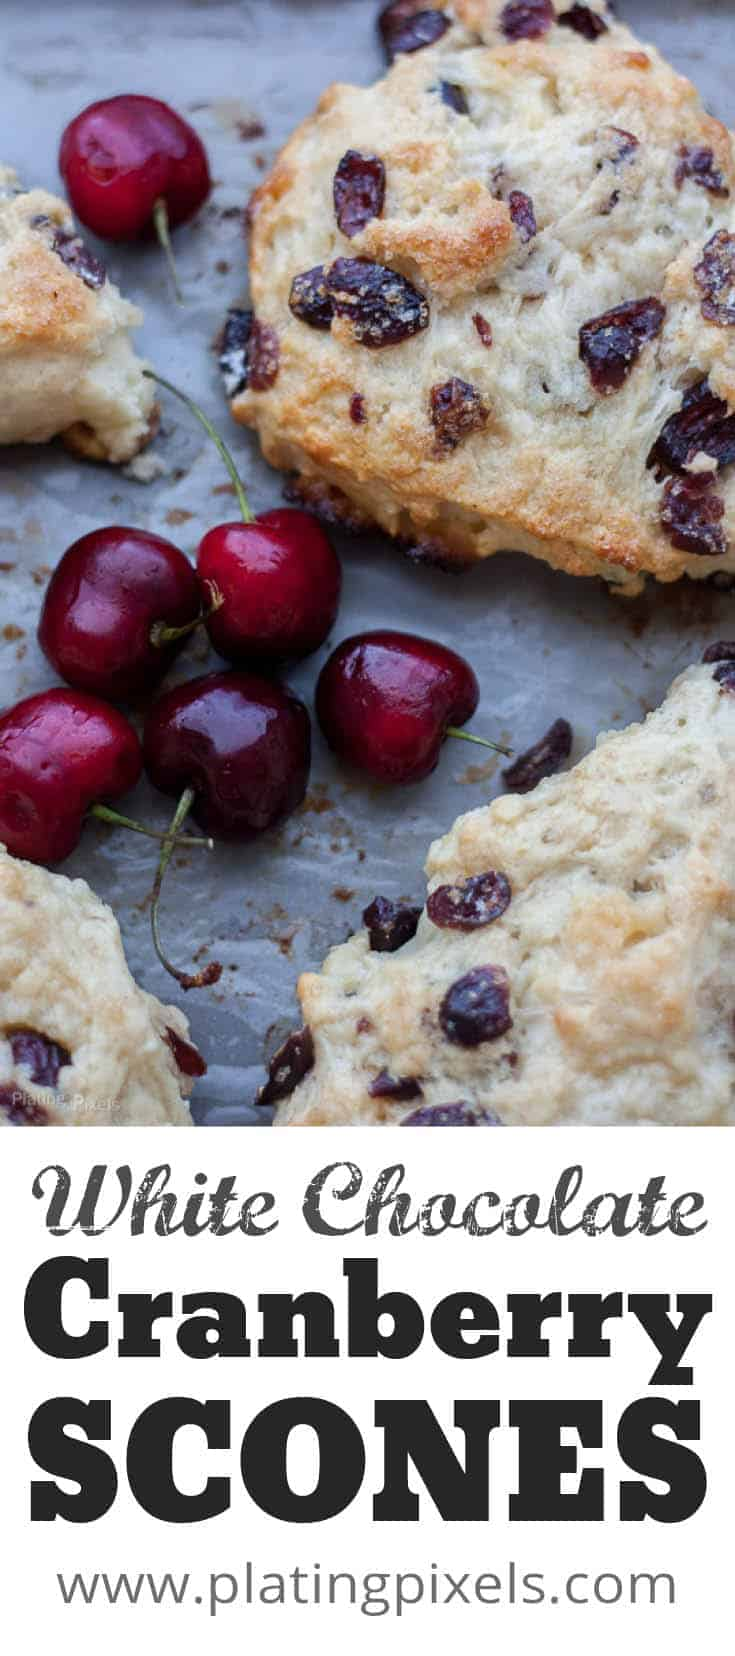 Decadent White Chocolate Cranberry Scones recipe with cherry yogurt baked right in. Moist and flaky with white chocolate and dried cranberries add a delicious sweet texture. A great for Mother\'s Day brunch or breakfast recipe. #scones #cranberryscone #pastry